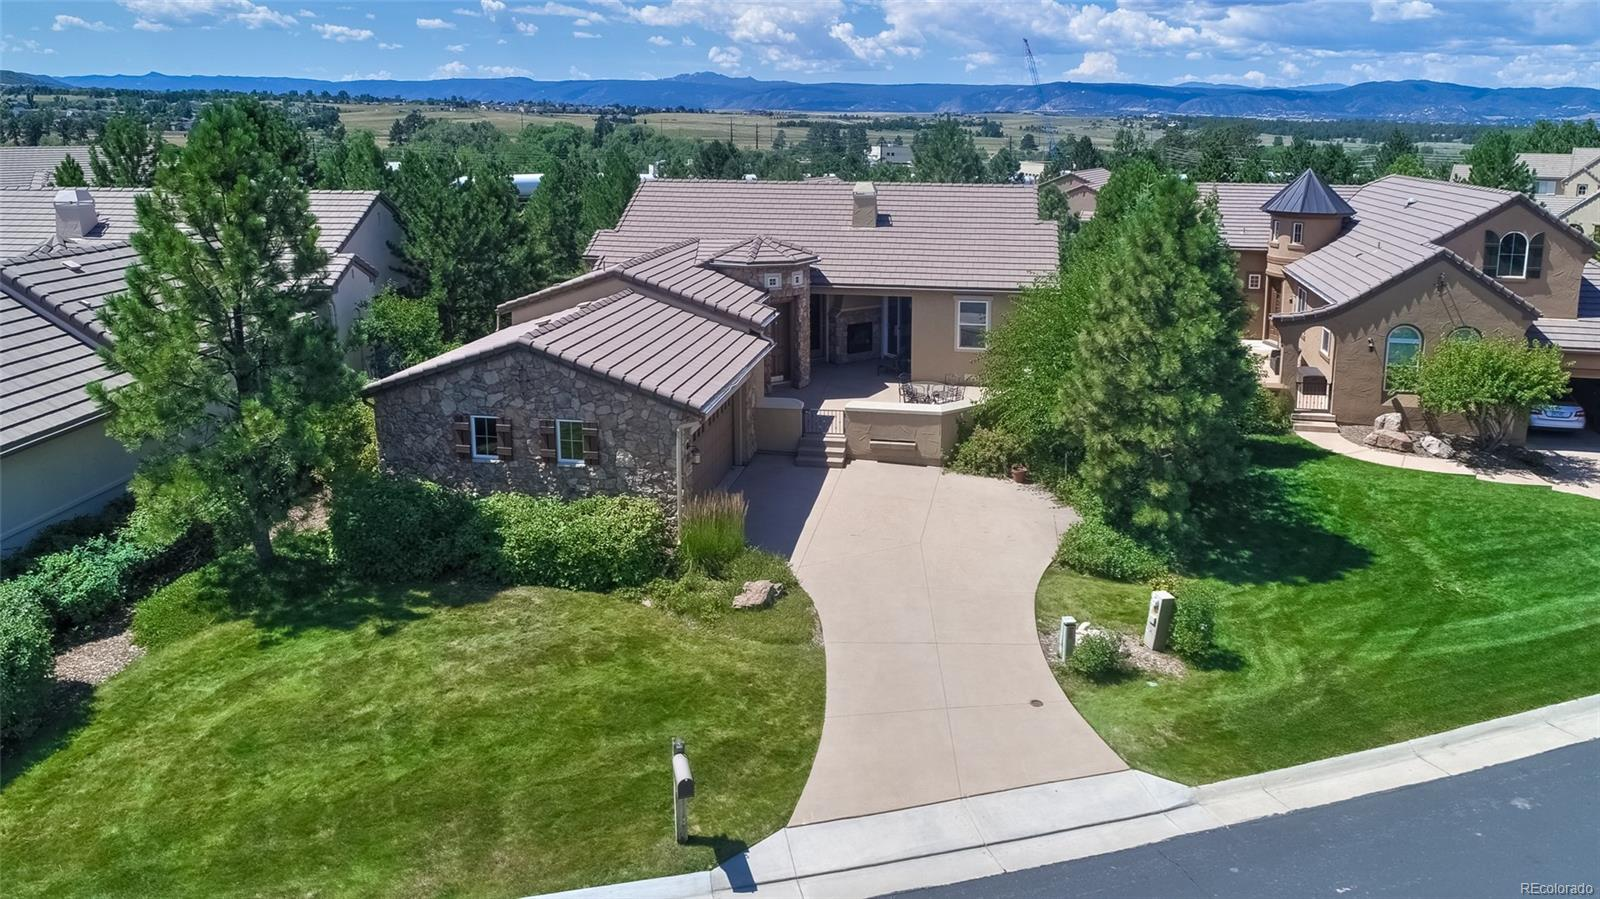 Aerial view of patio home